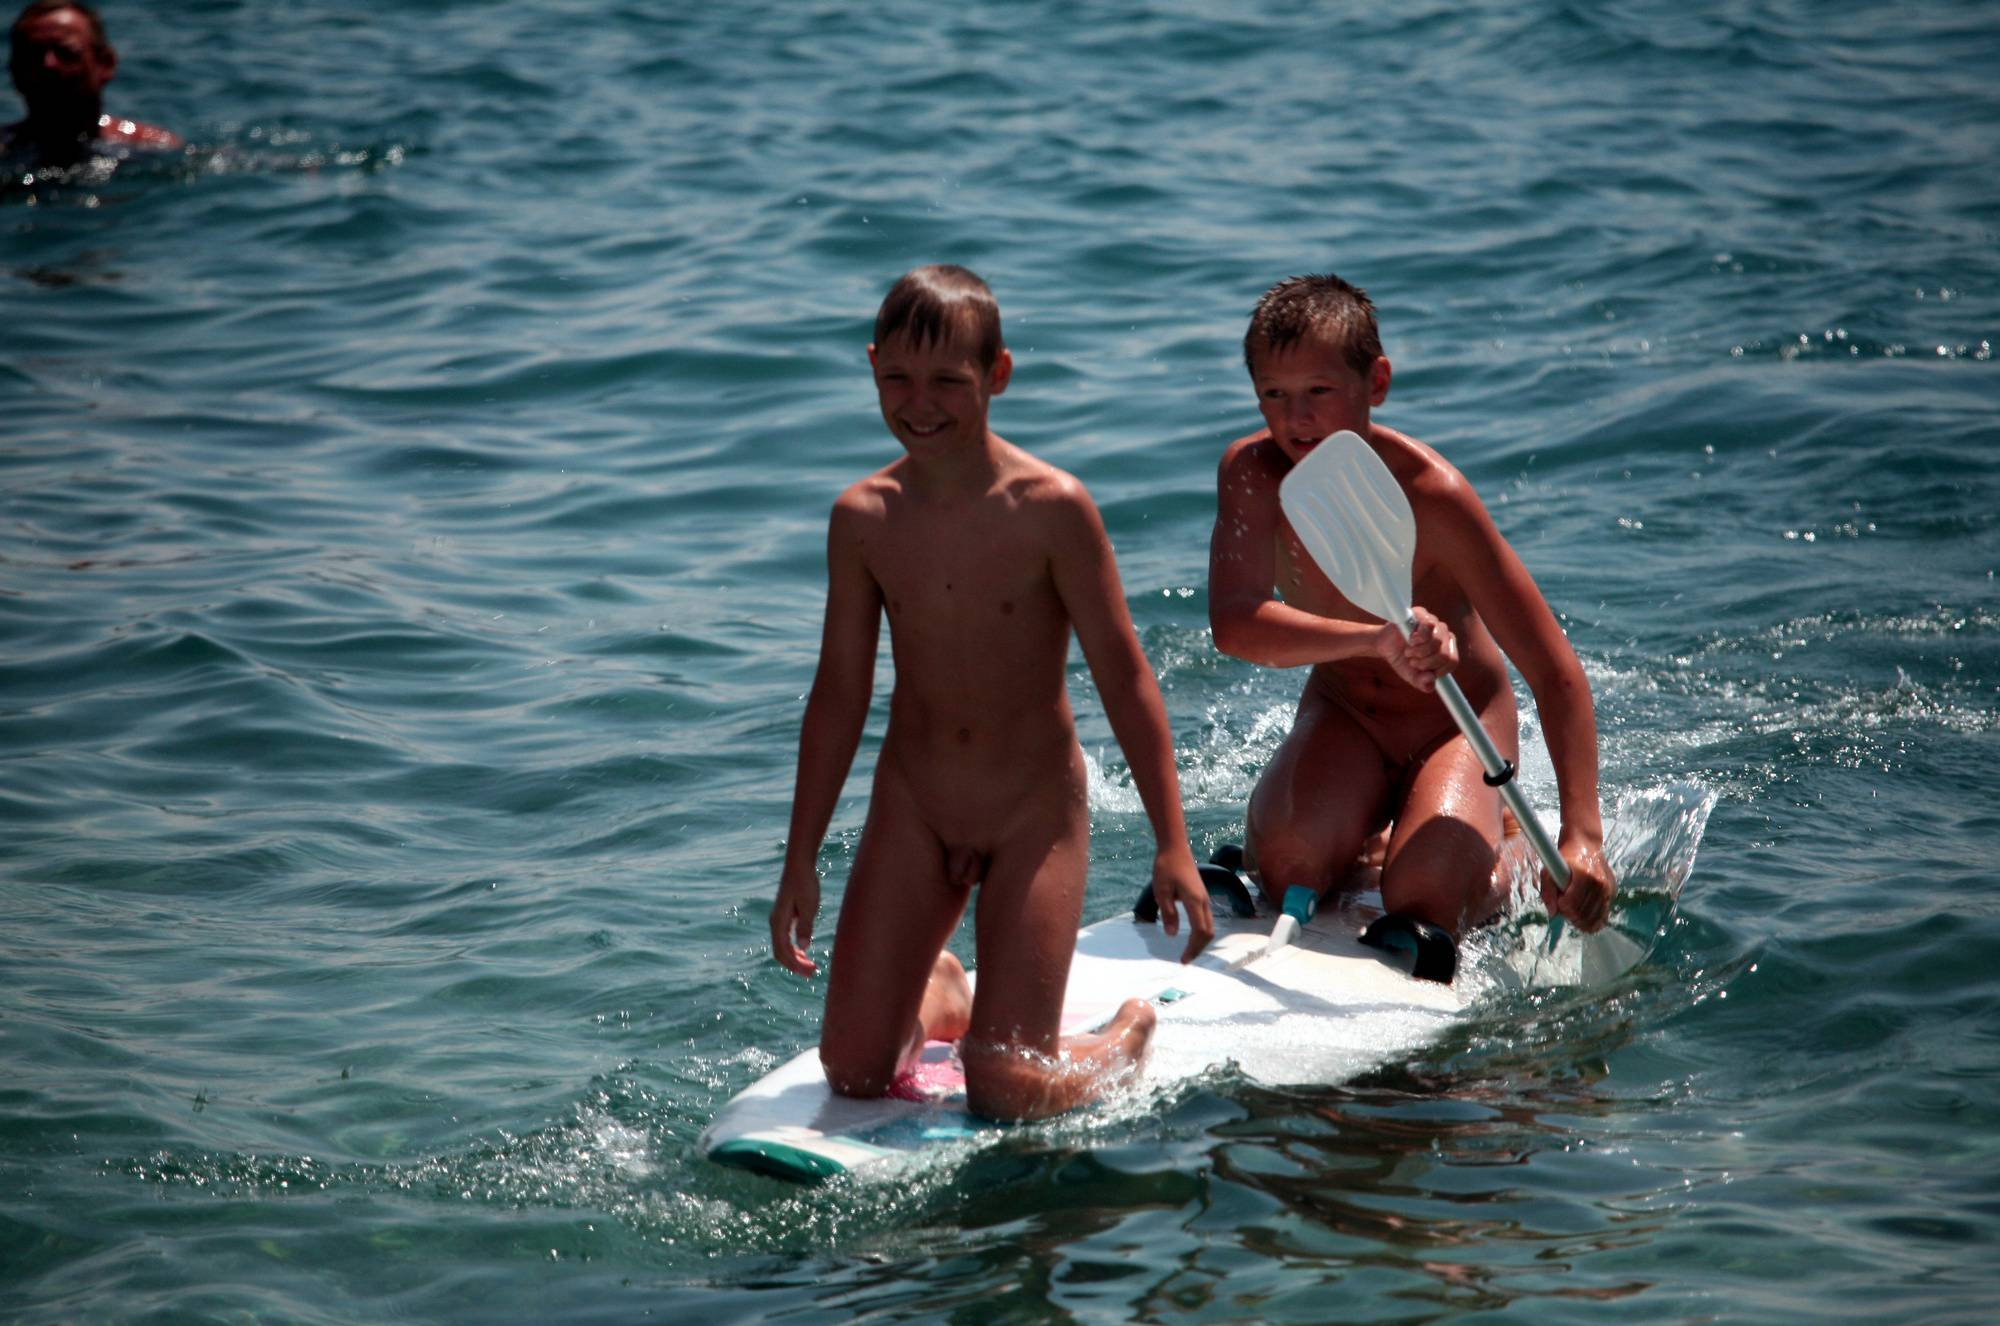 Nudist Photos Boys Nudist Water Surfing - 1